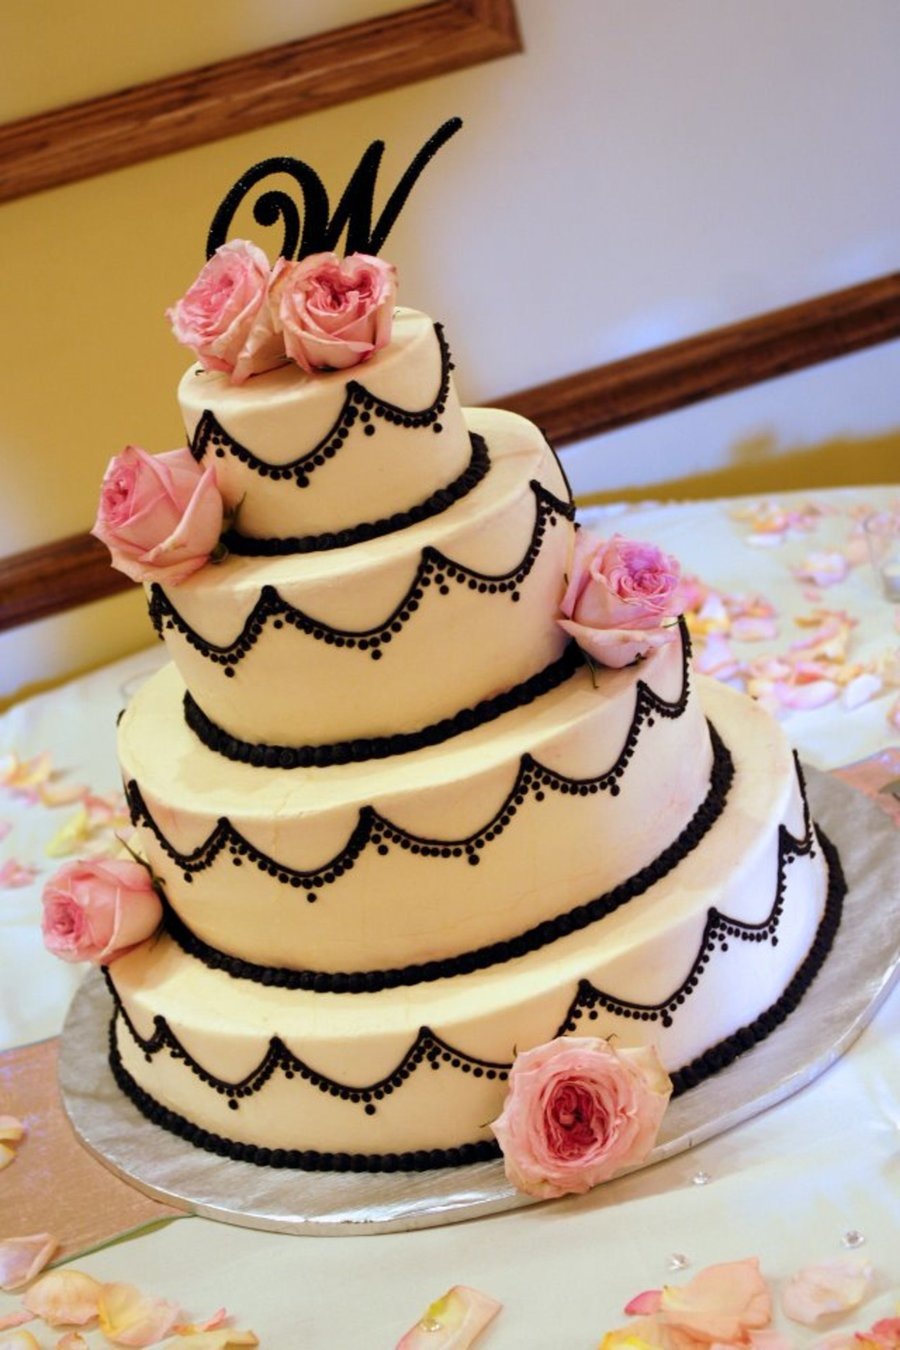 4-Tier Wedding Cake on Cake Central